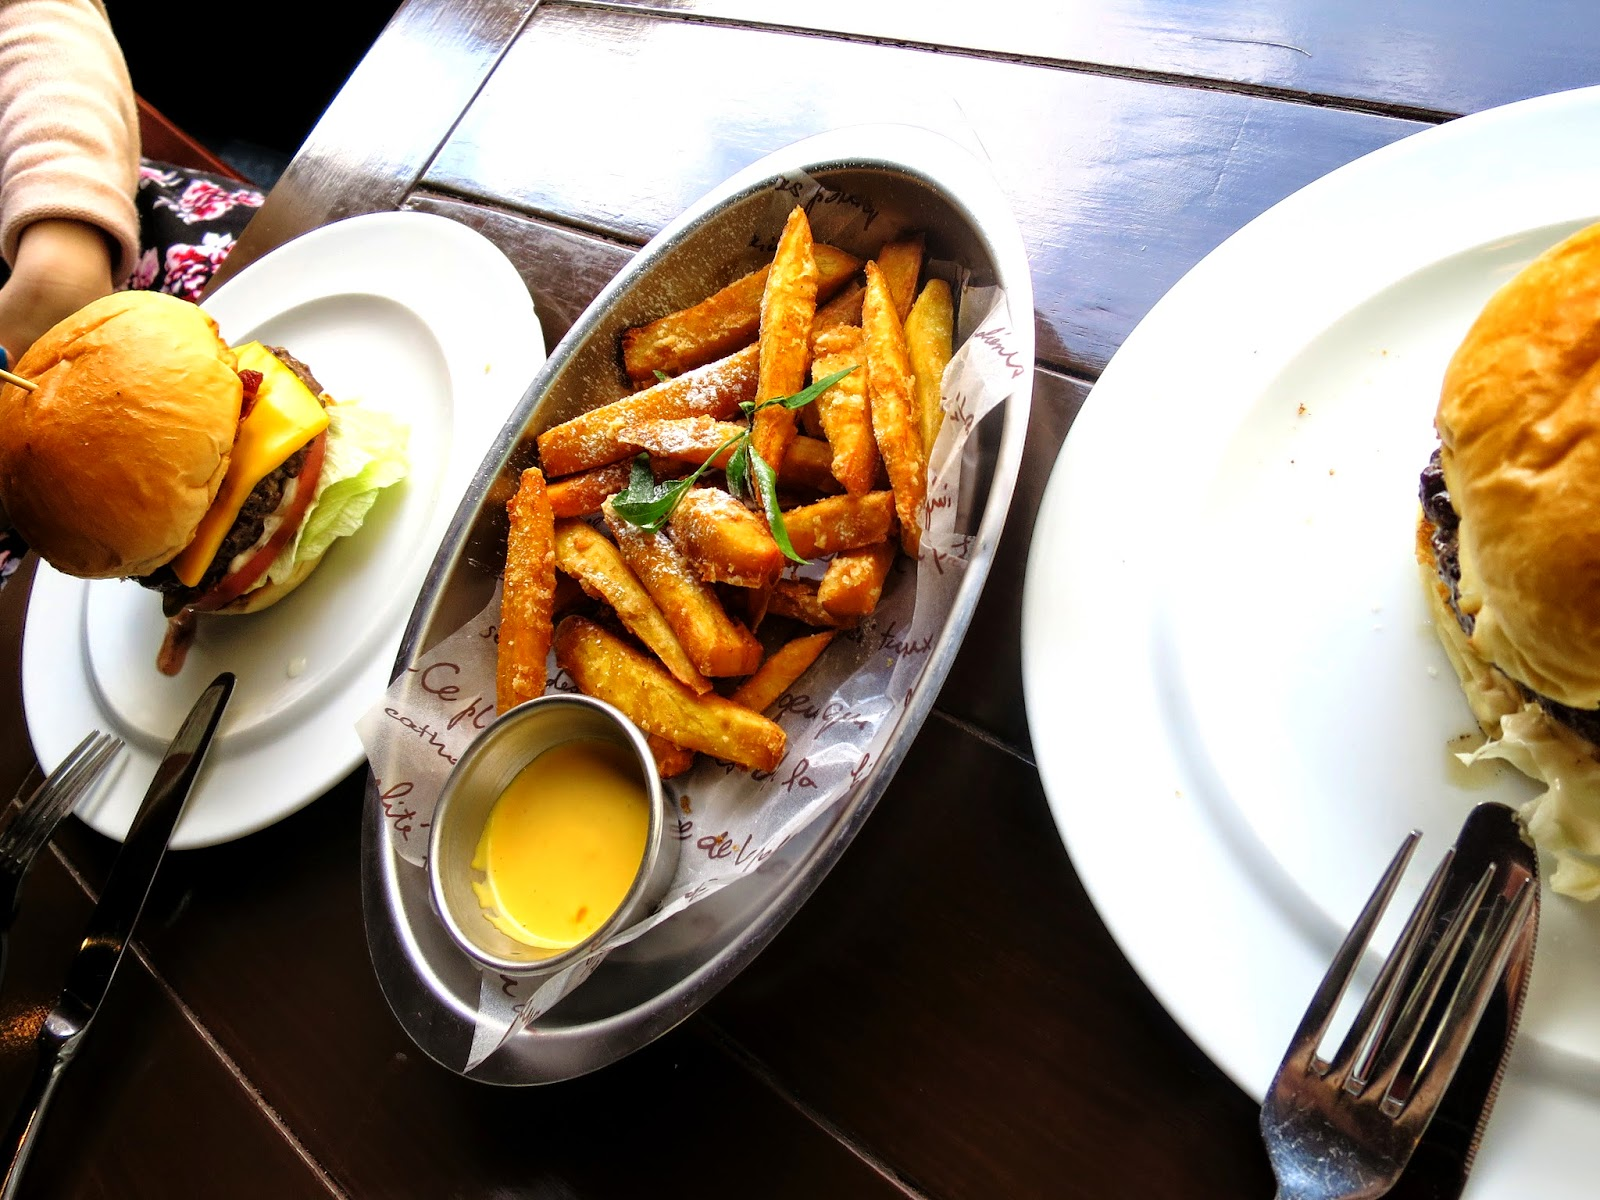 Photo of the Bacon Burger, Miso Burger and Sweet Fries at Burger B's, Hongdae